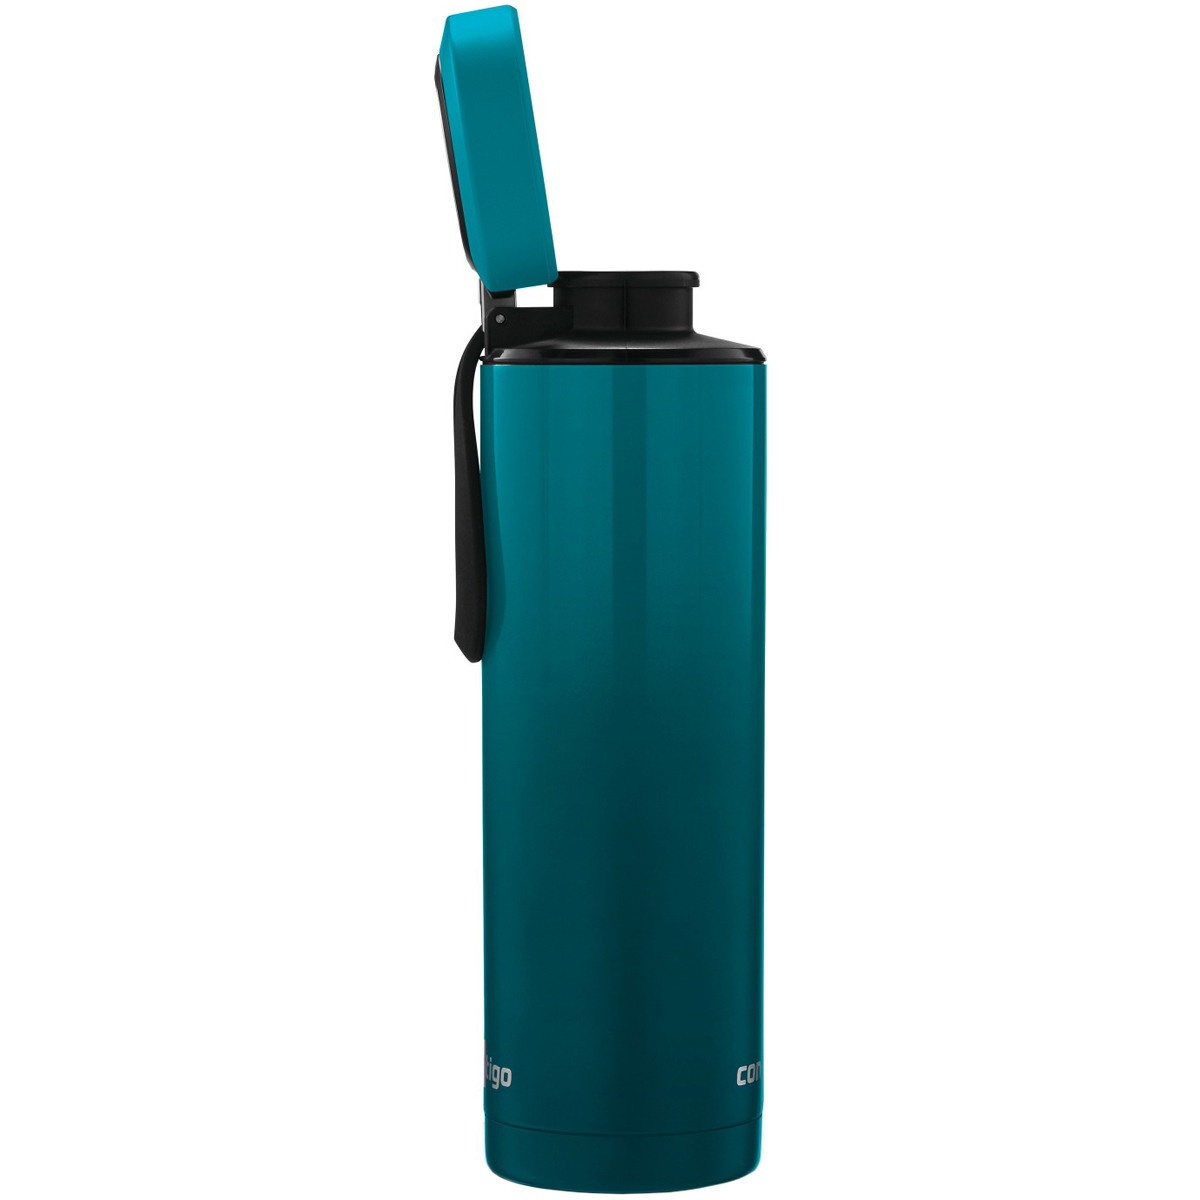 Contigo-24-oz-Evoke-Quick-Twist-Lid-Insulated-Stainless-Steel-Water-Bottle thumbnail 17